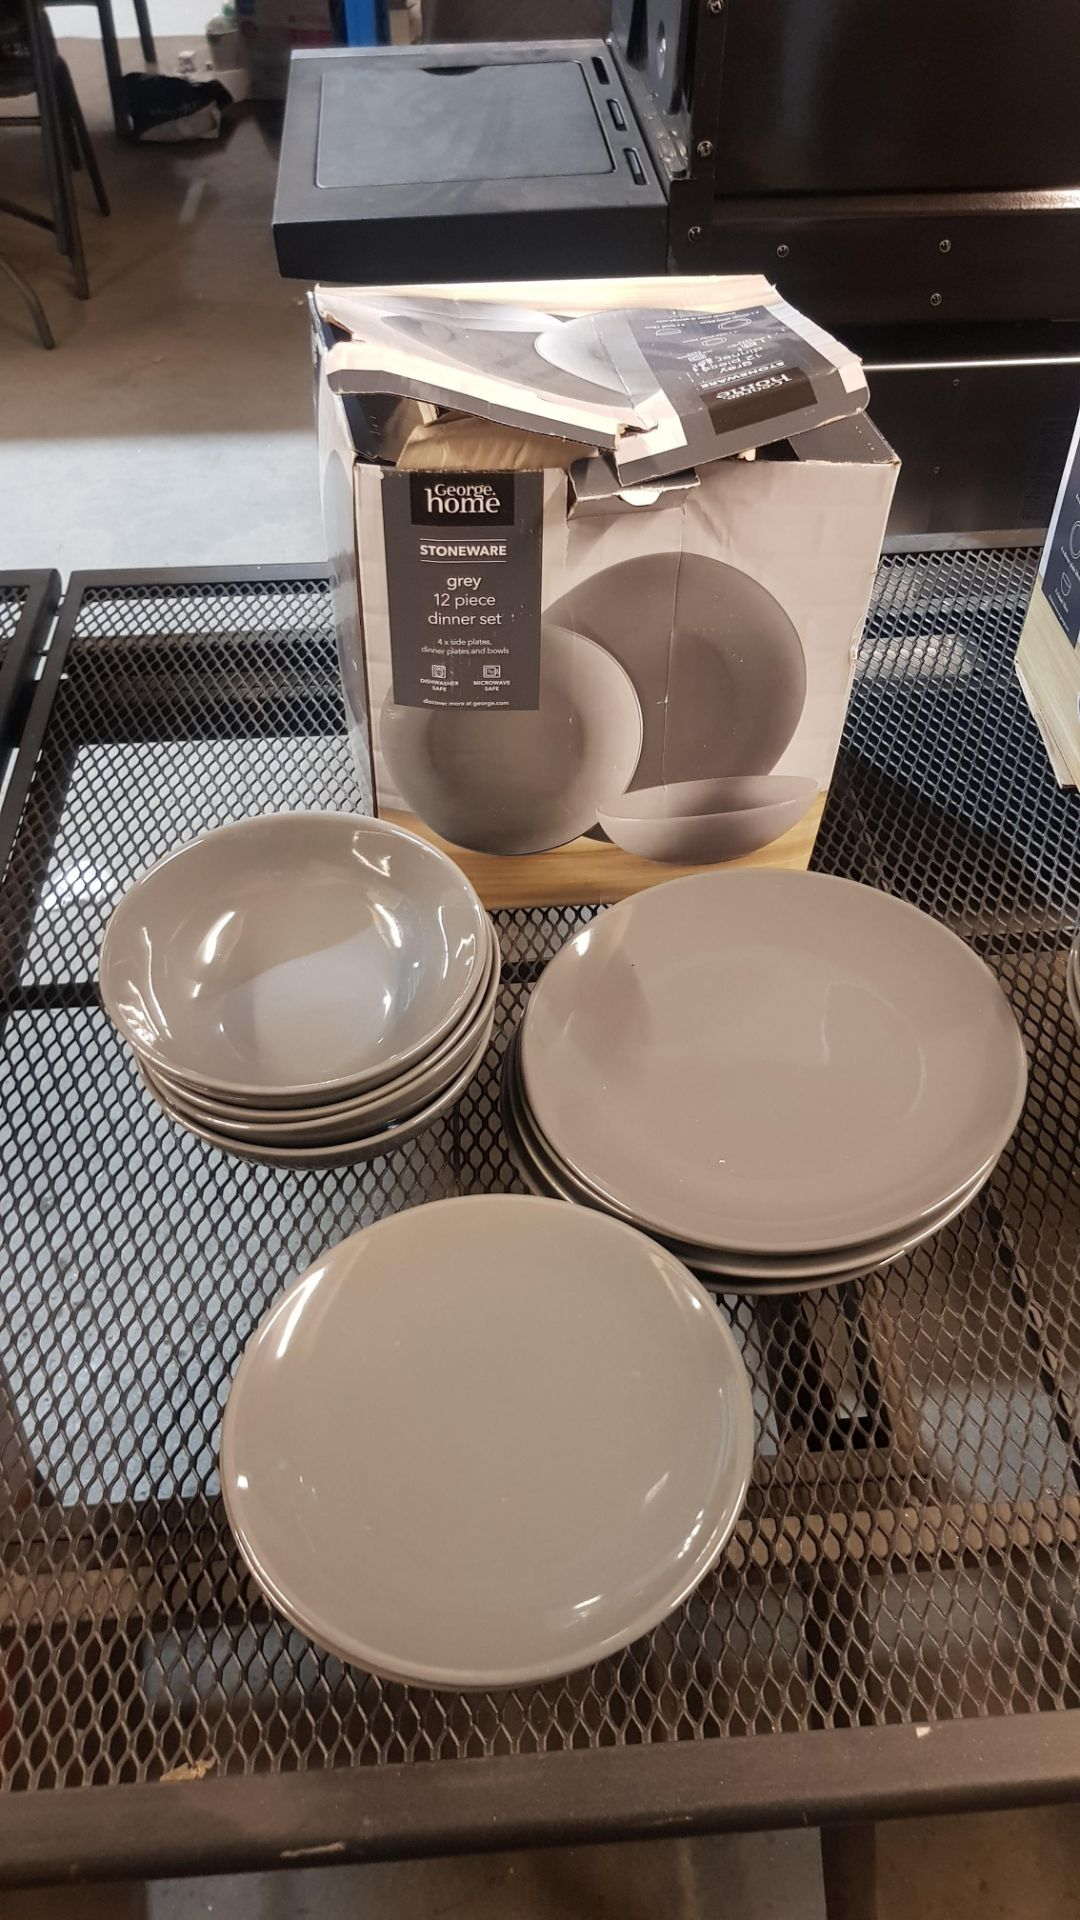 4x GH Stoneware Grey 12 Piece Dinner Set (Lot Comes With 3x Boxes) - Image 3 of 5